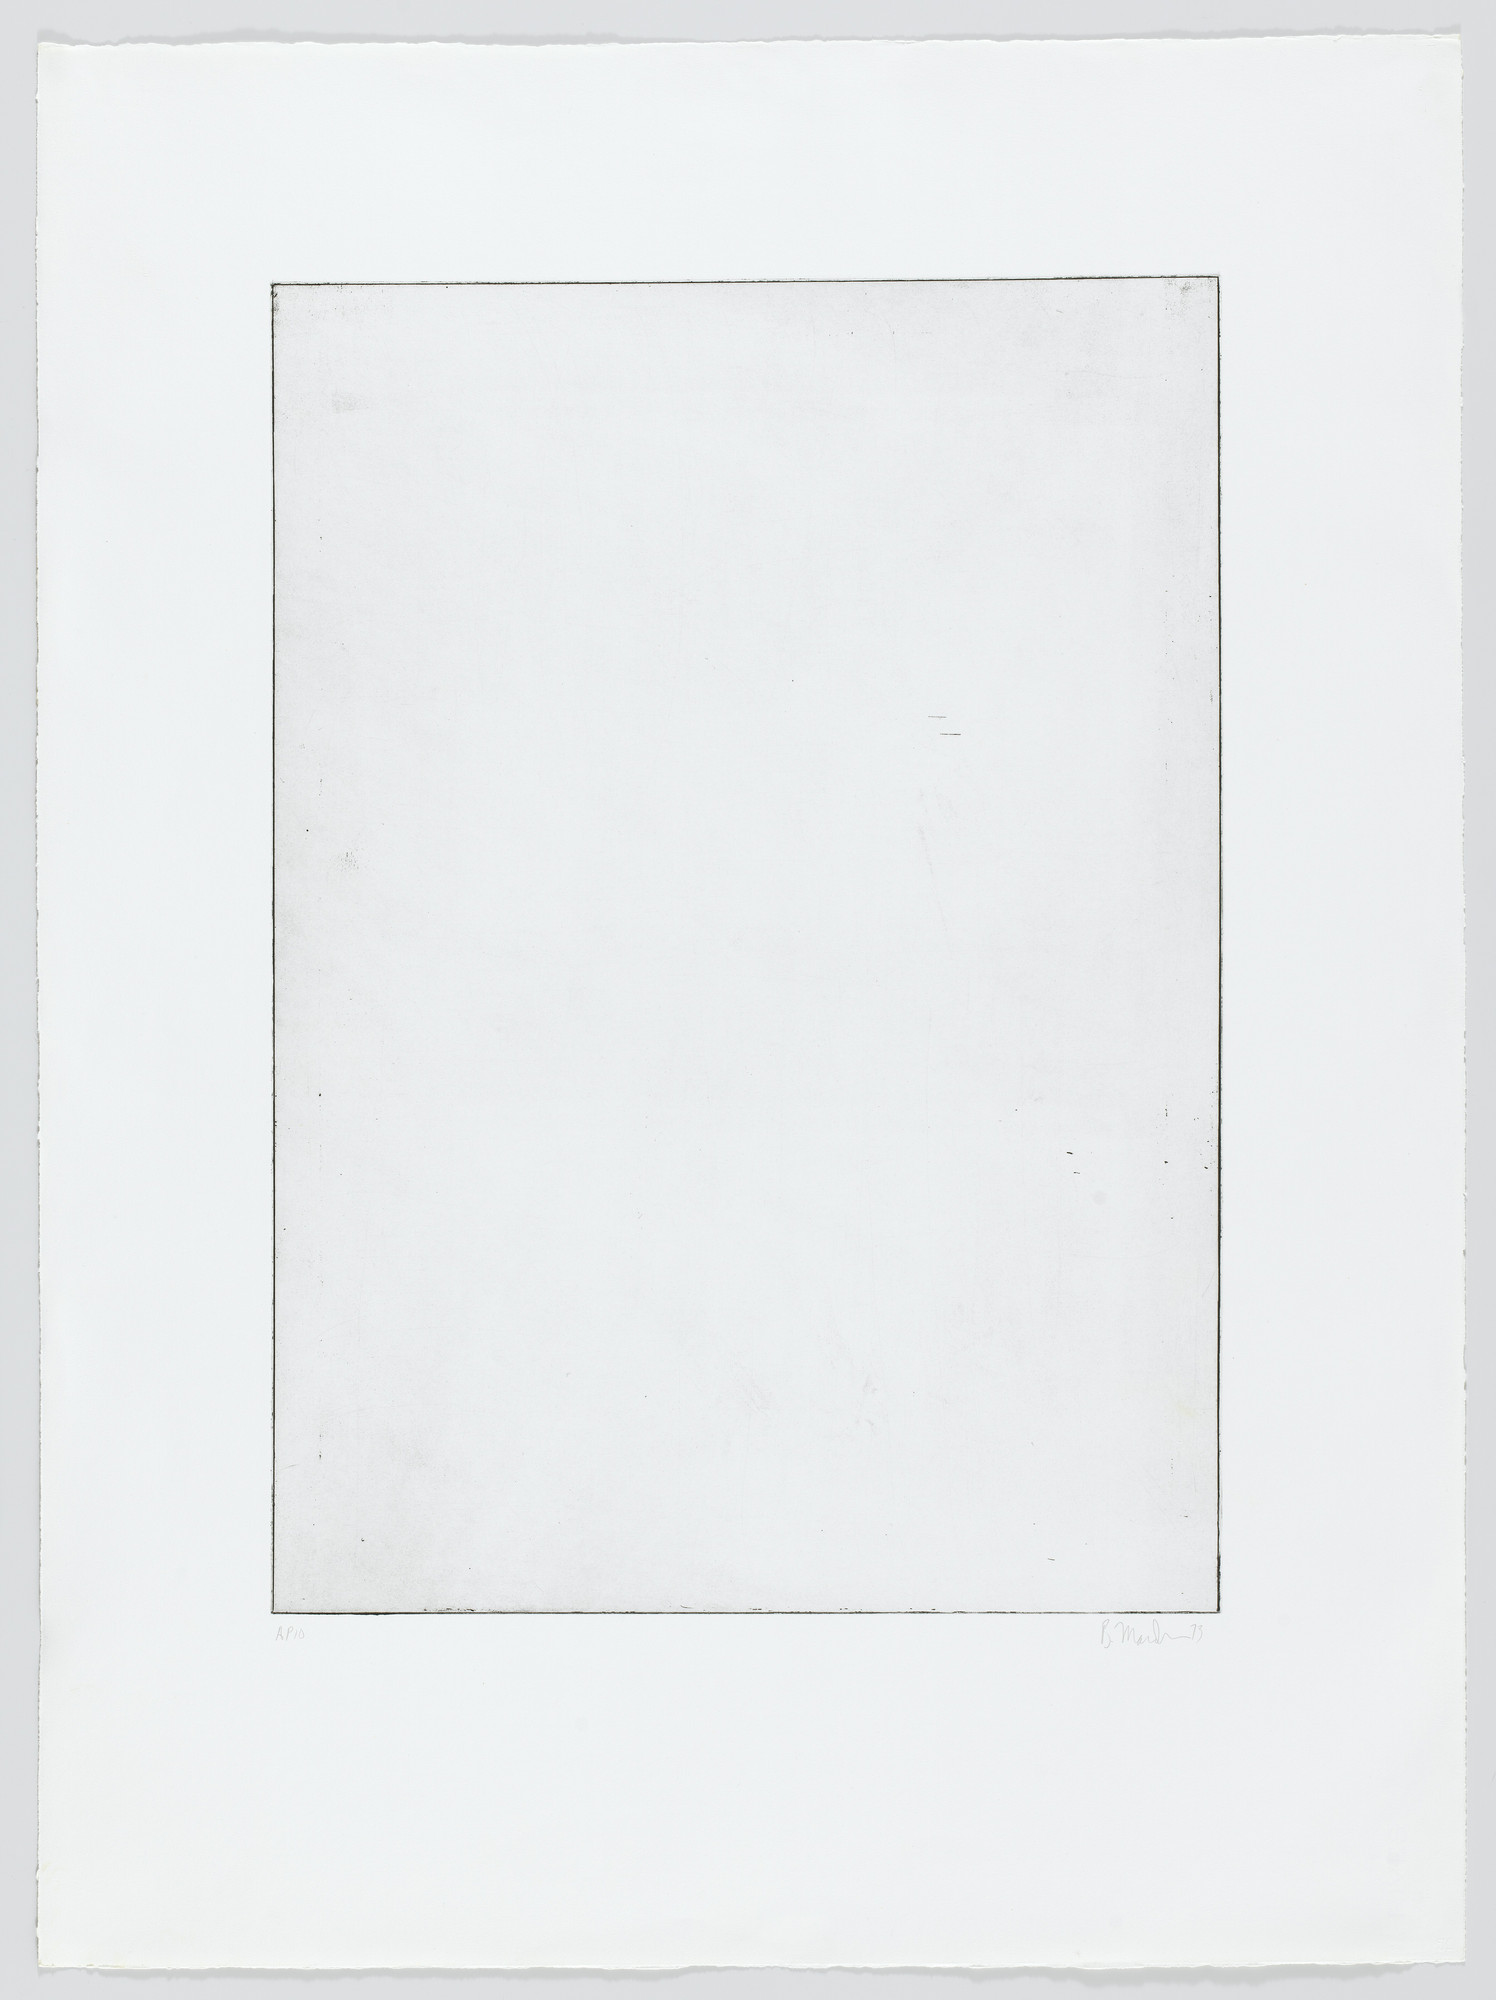 Brice Marden. Untitled from Five Plates. 1973